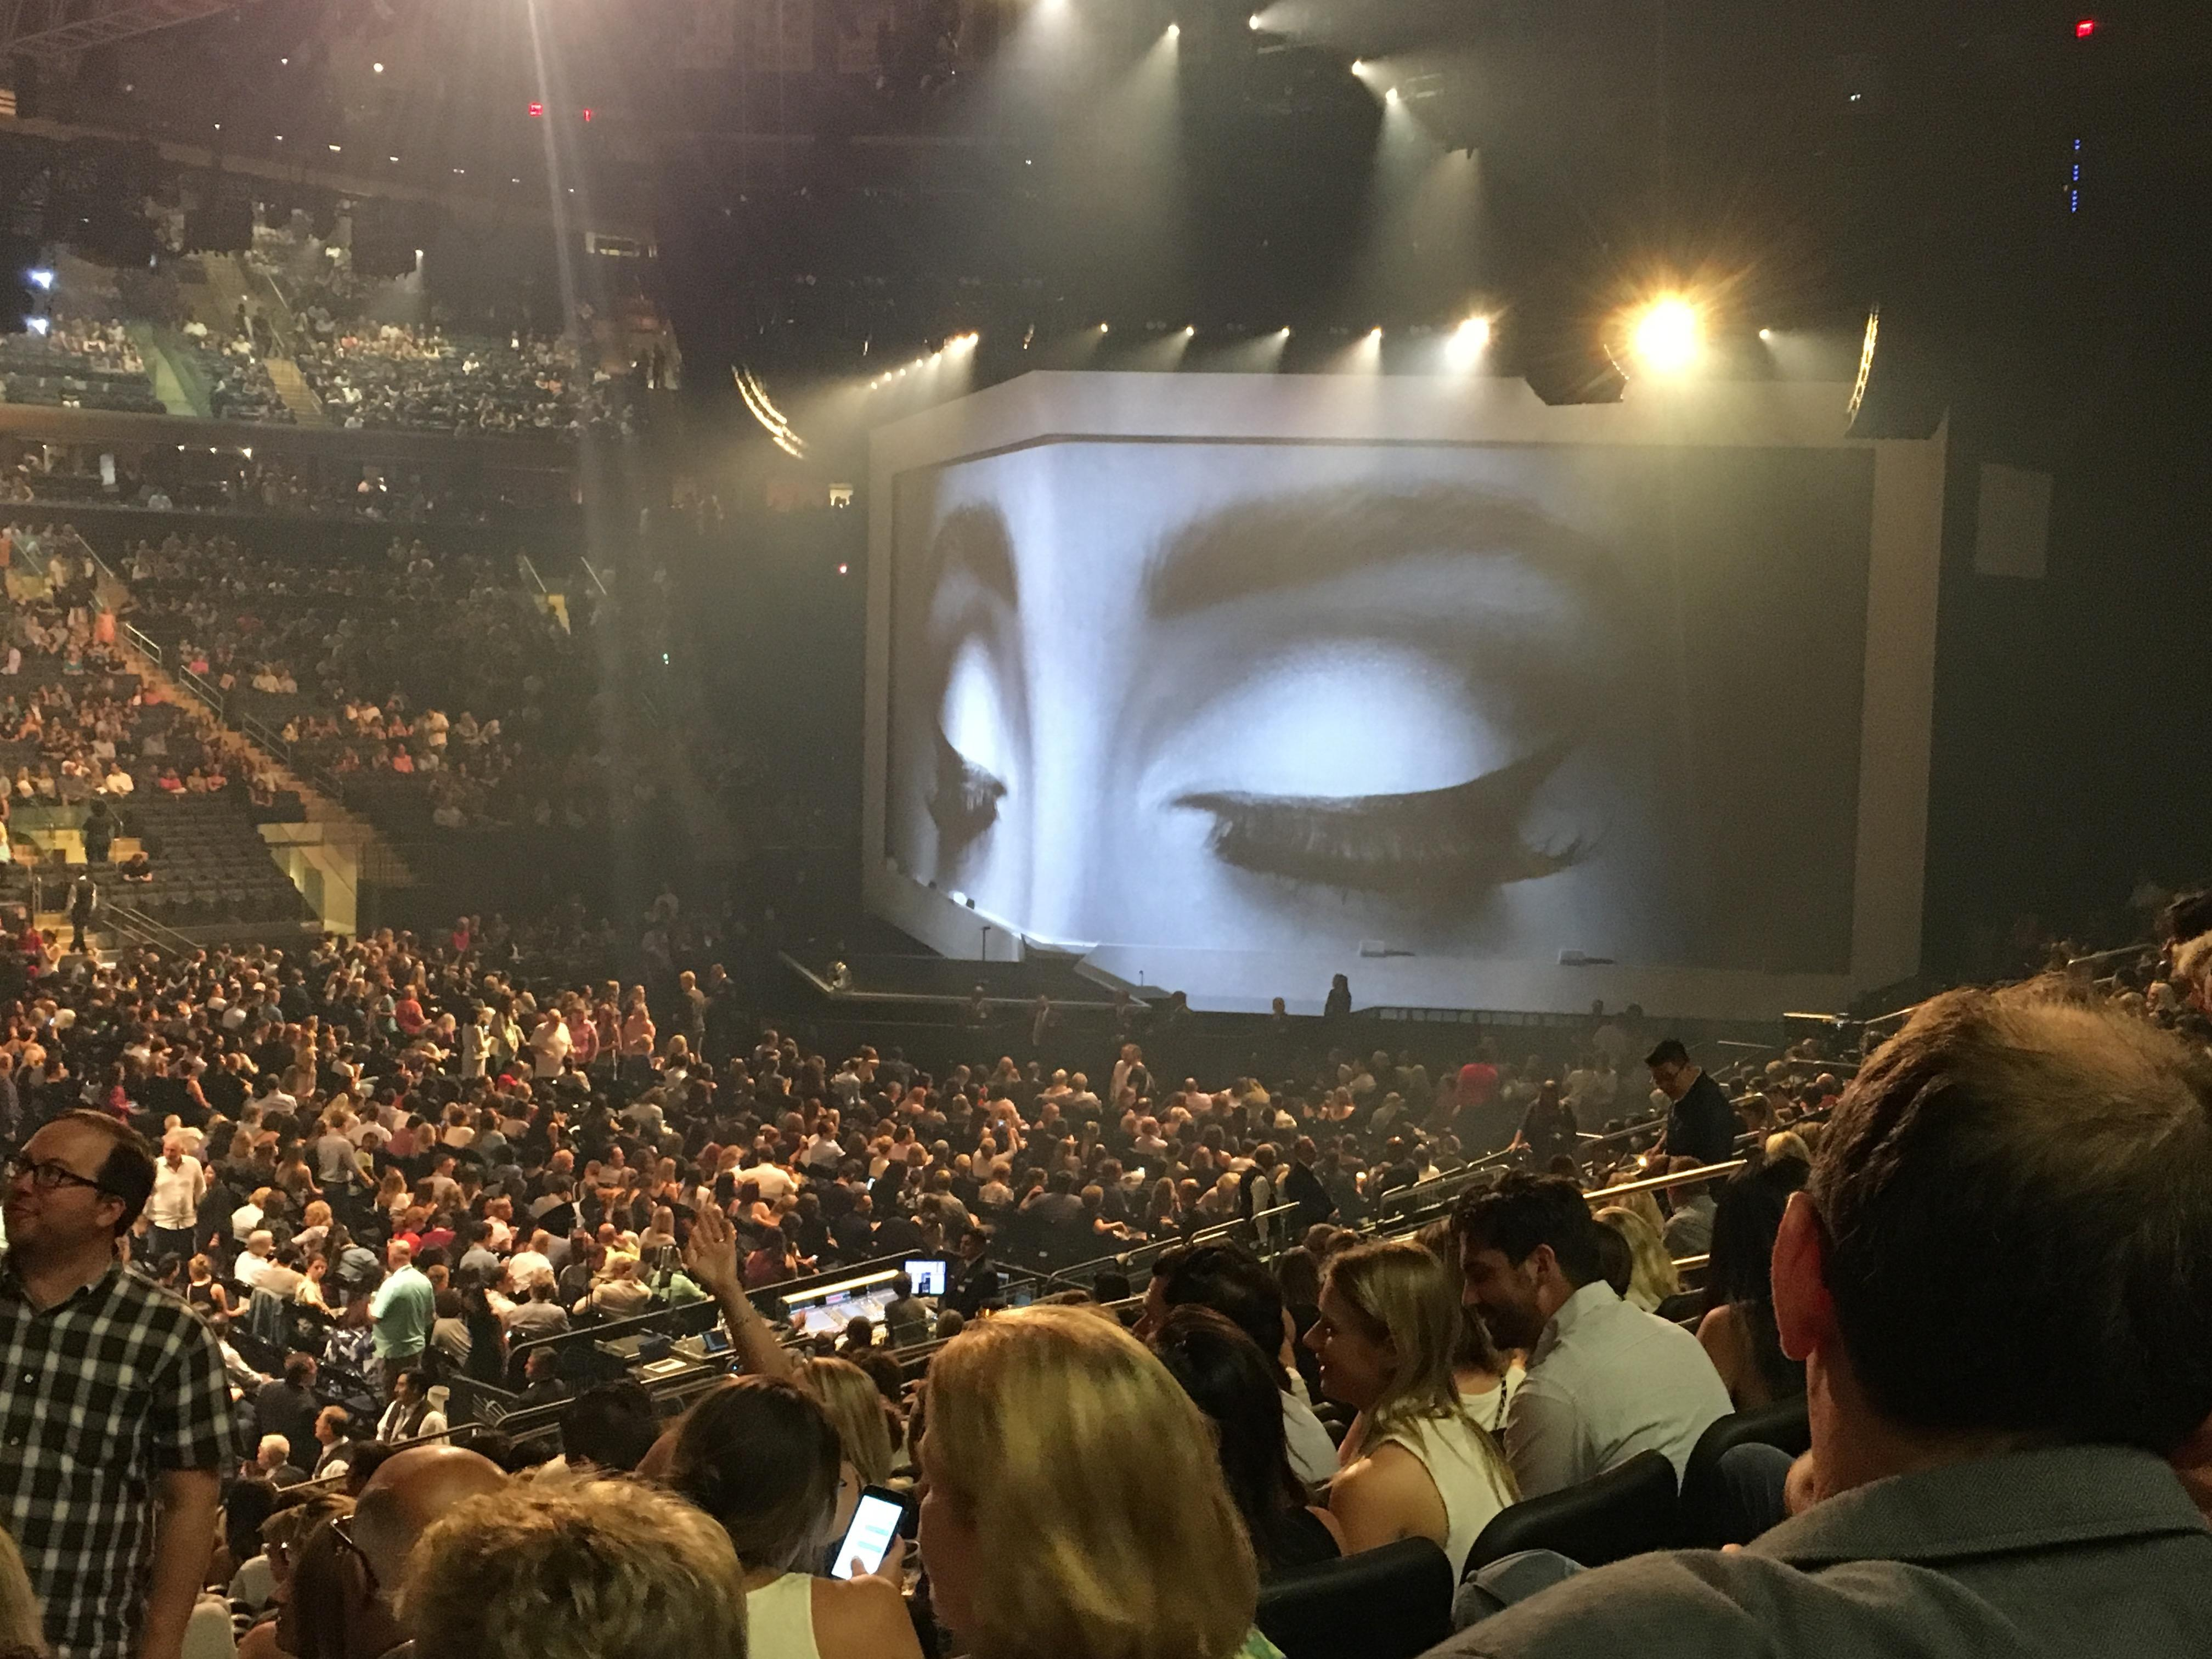 Madison Square Garden, section 106, row 17, seat 3 - Adele tour ...